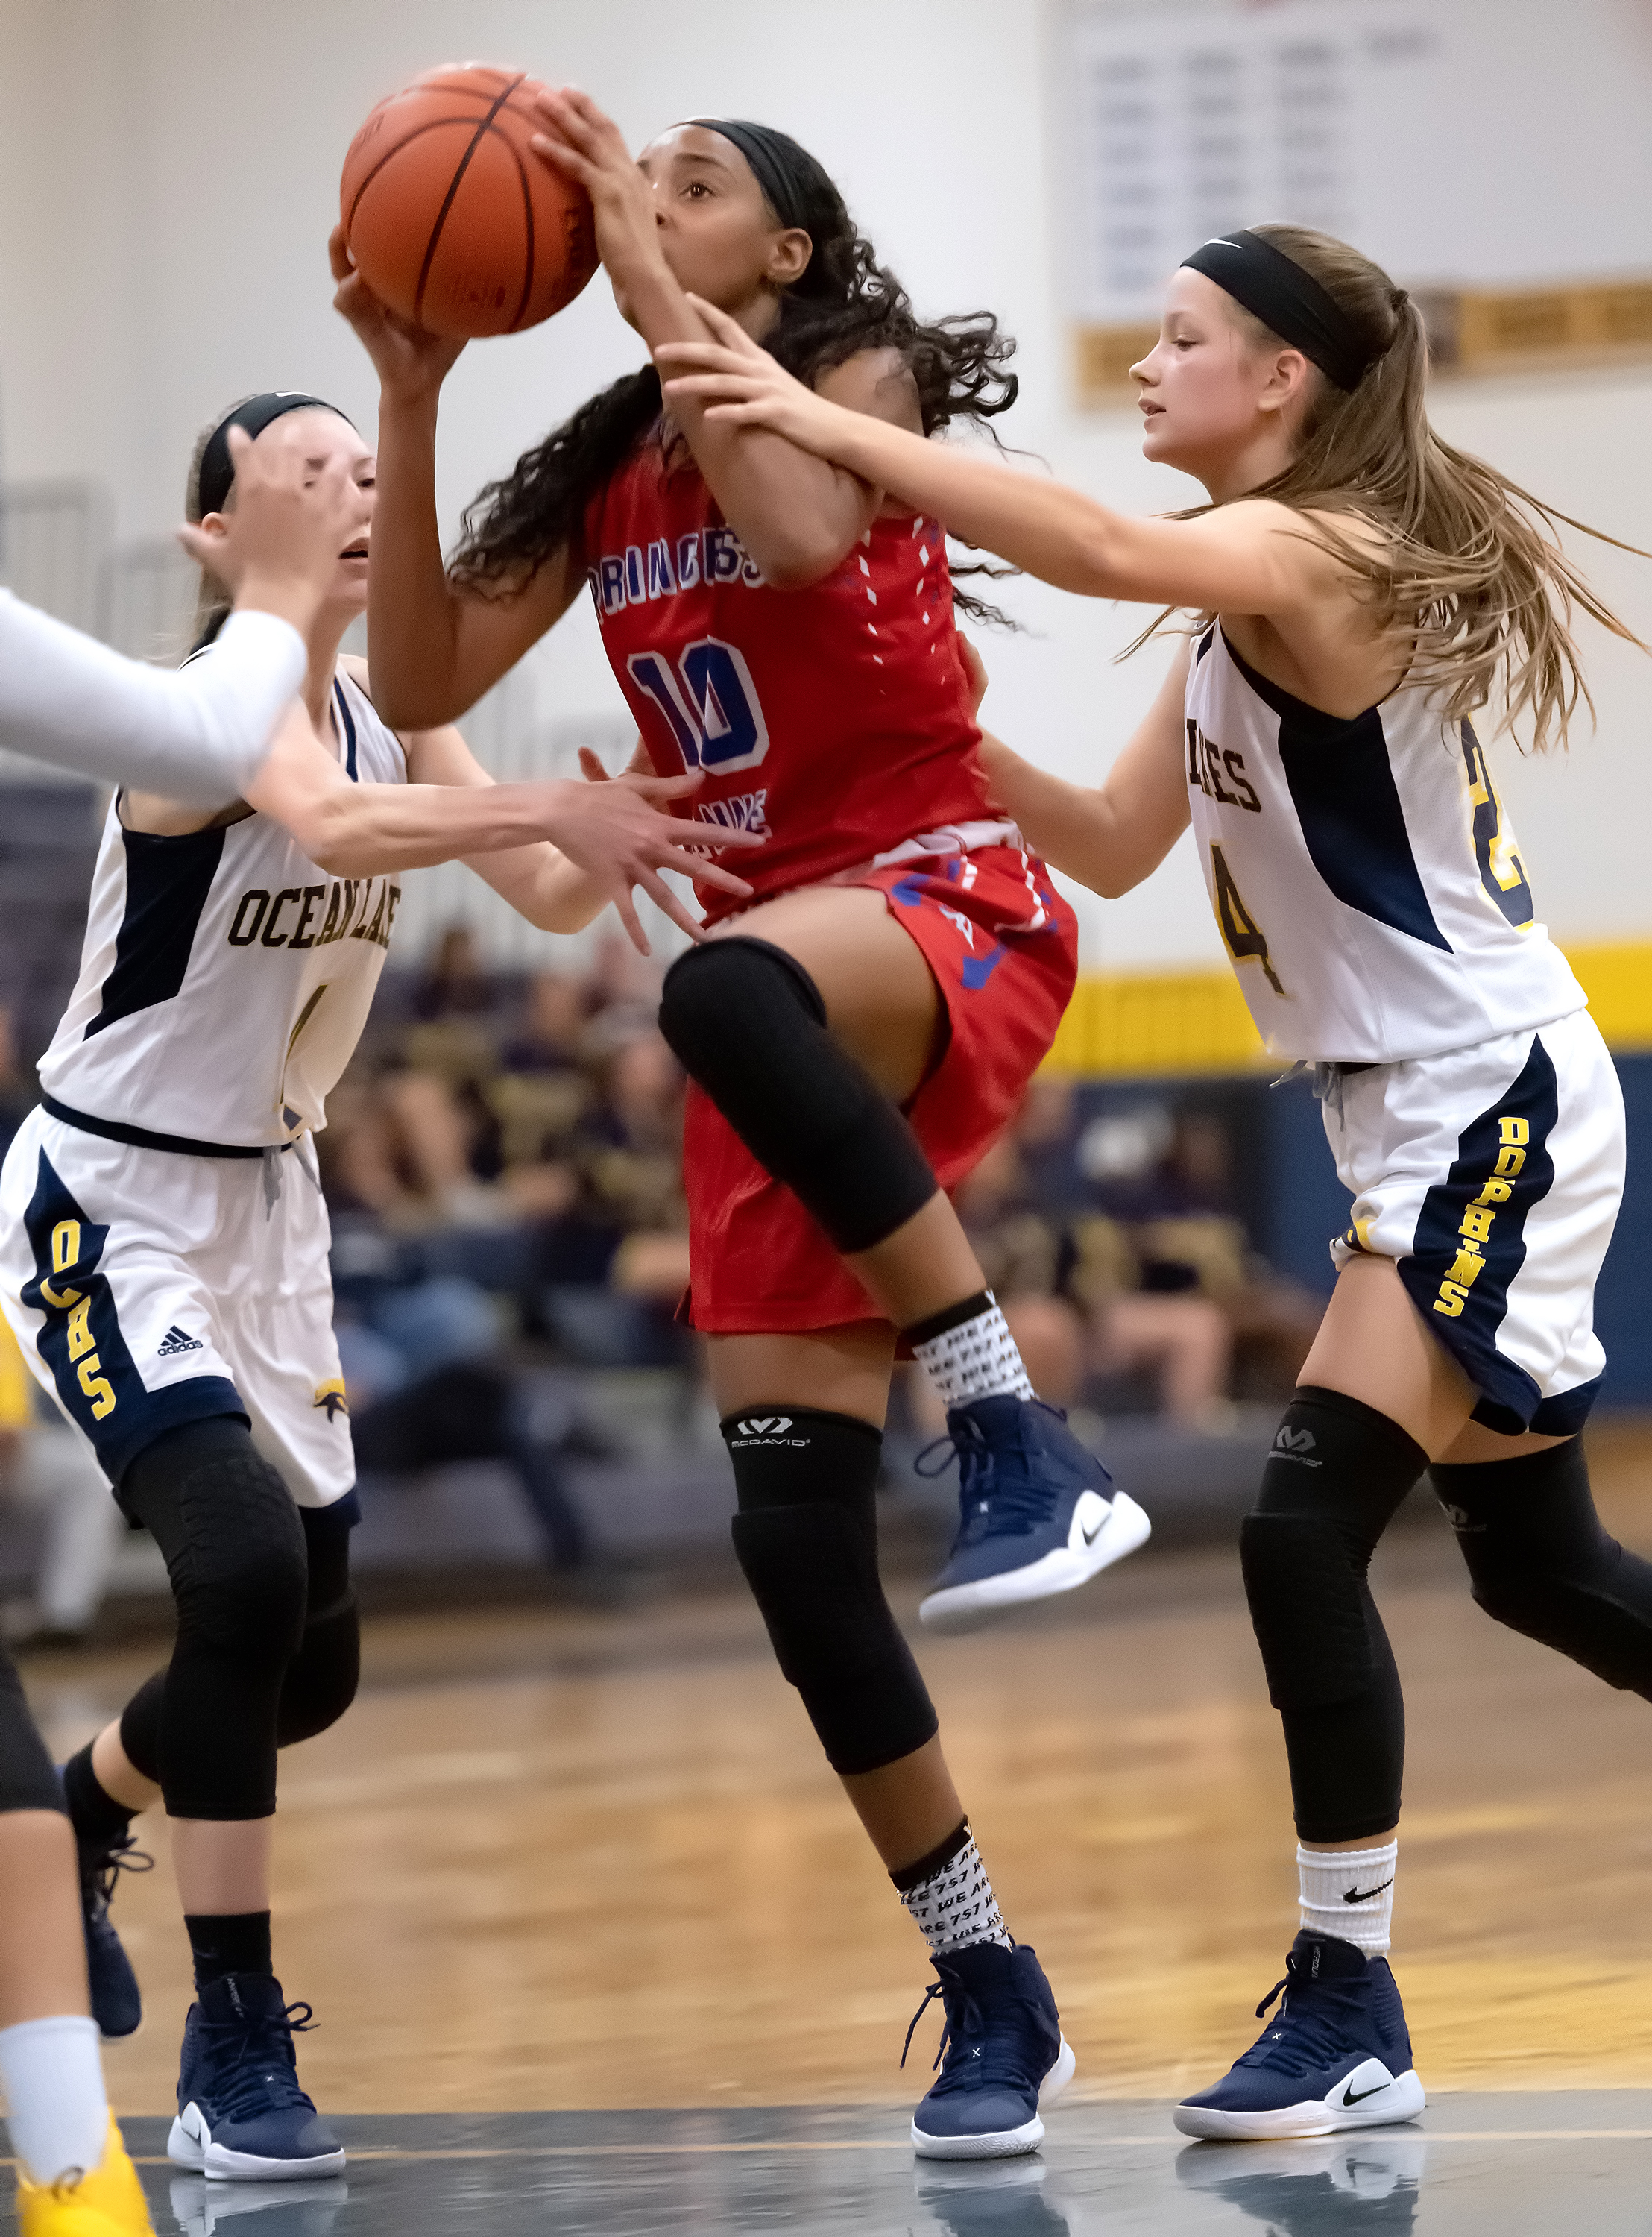 Game action from Princess Anne vs Ocean Lakes girls basketball held on Friday, November 30, 2018 at Ocean Lakes High School in Virginia Beach. Princess Anne defeated Ocean Lakes 85 to 39.